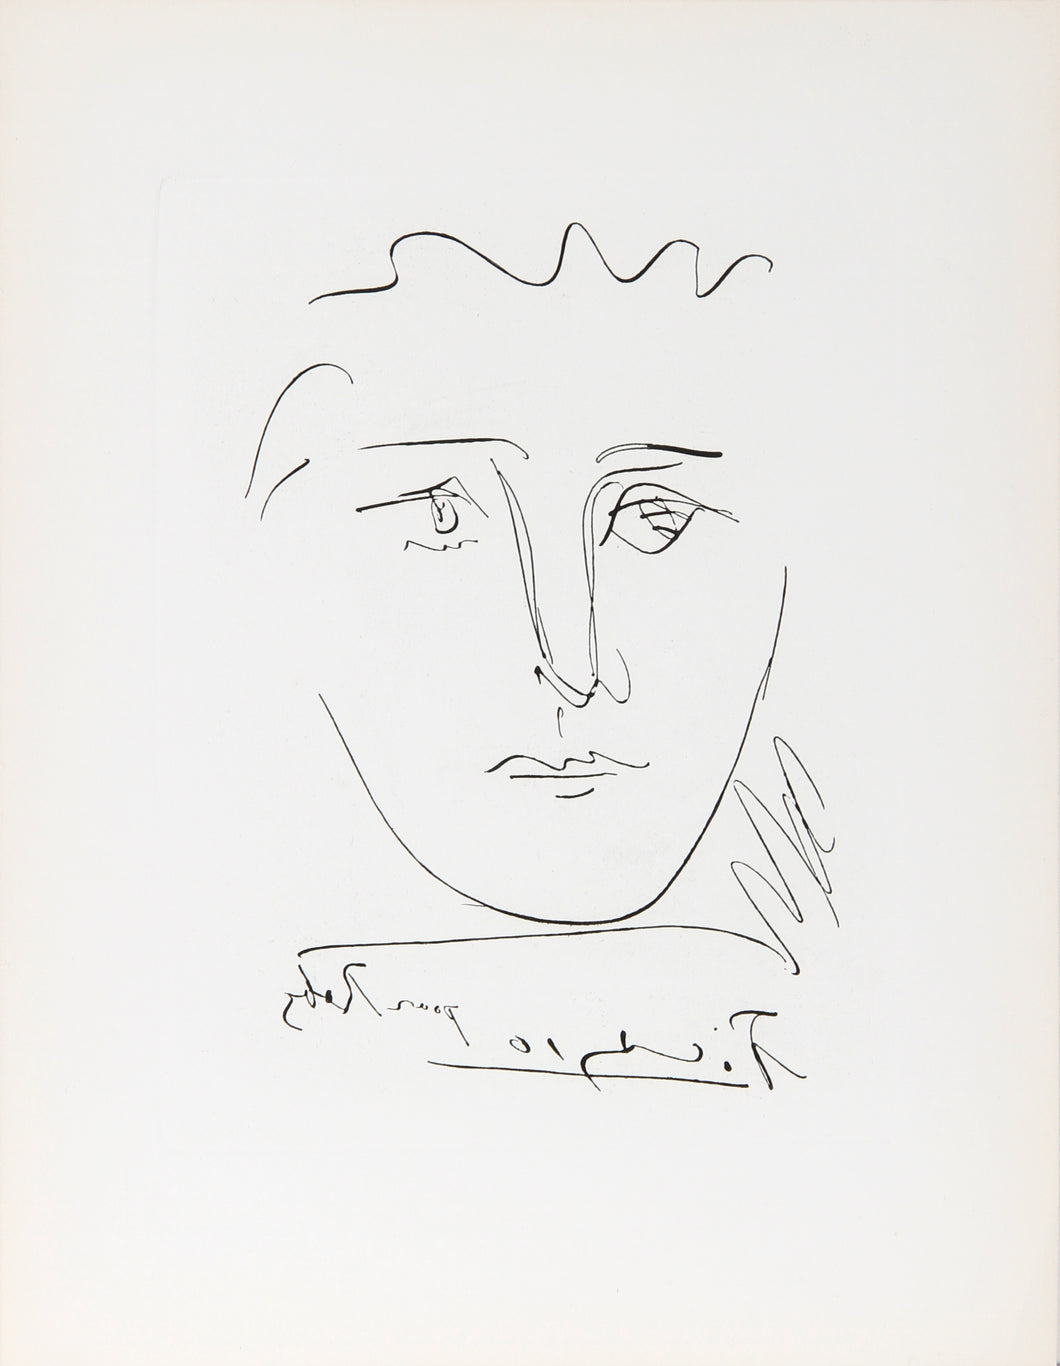 Pablo Picasso, L'Age de Soleil (Pour Roby), Etching, signed in the plate